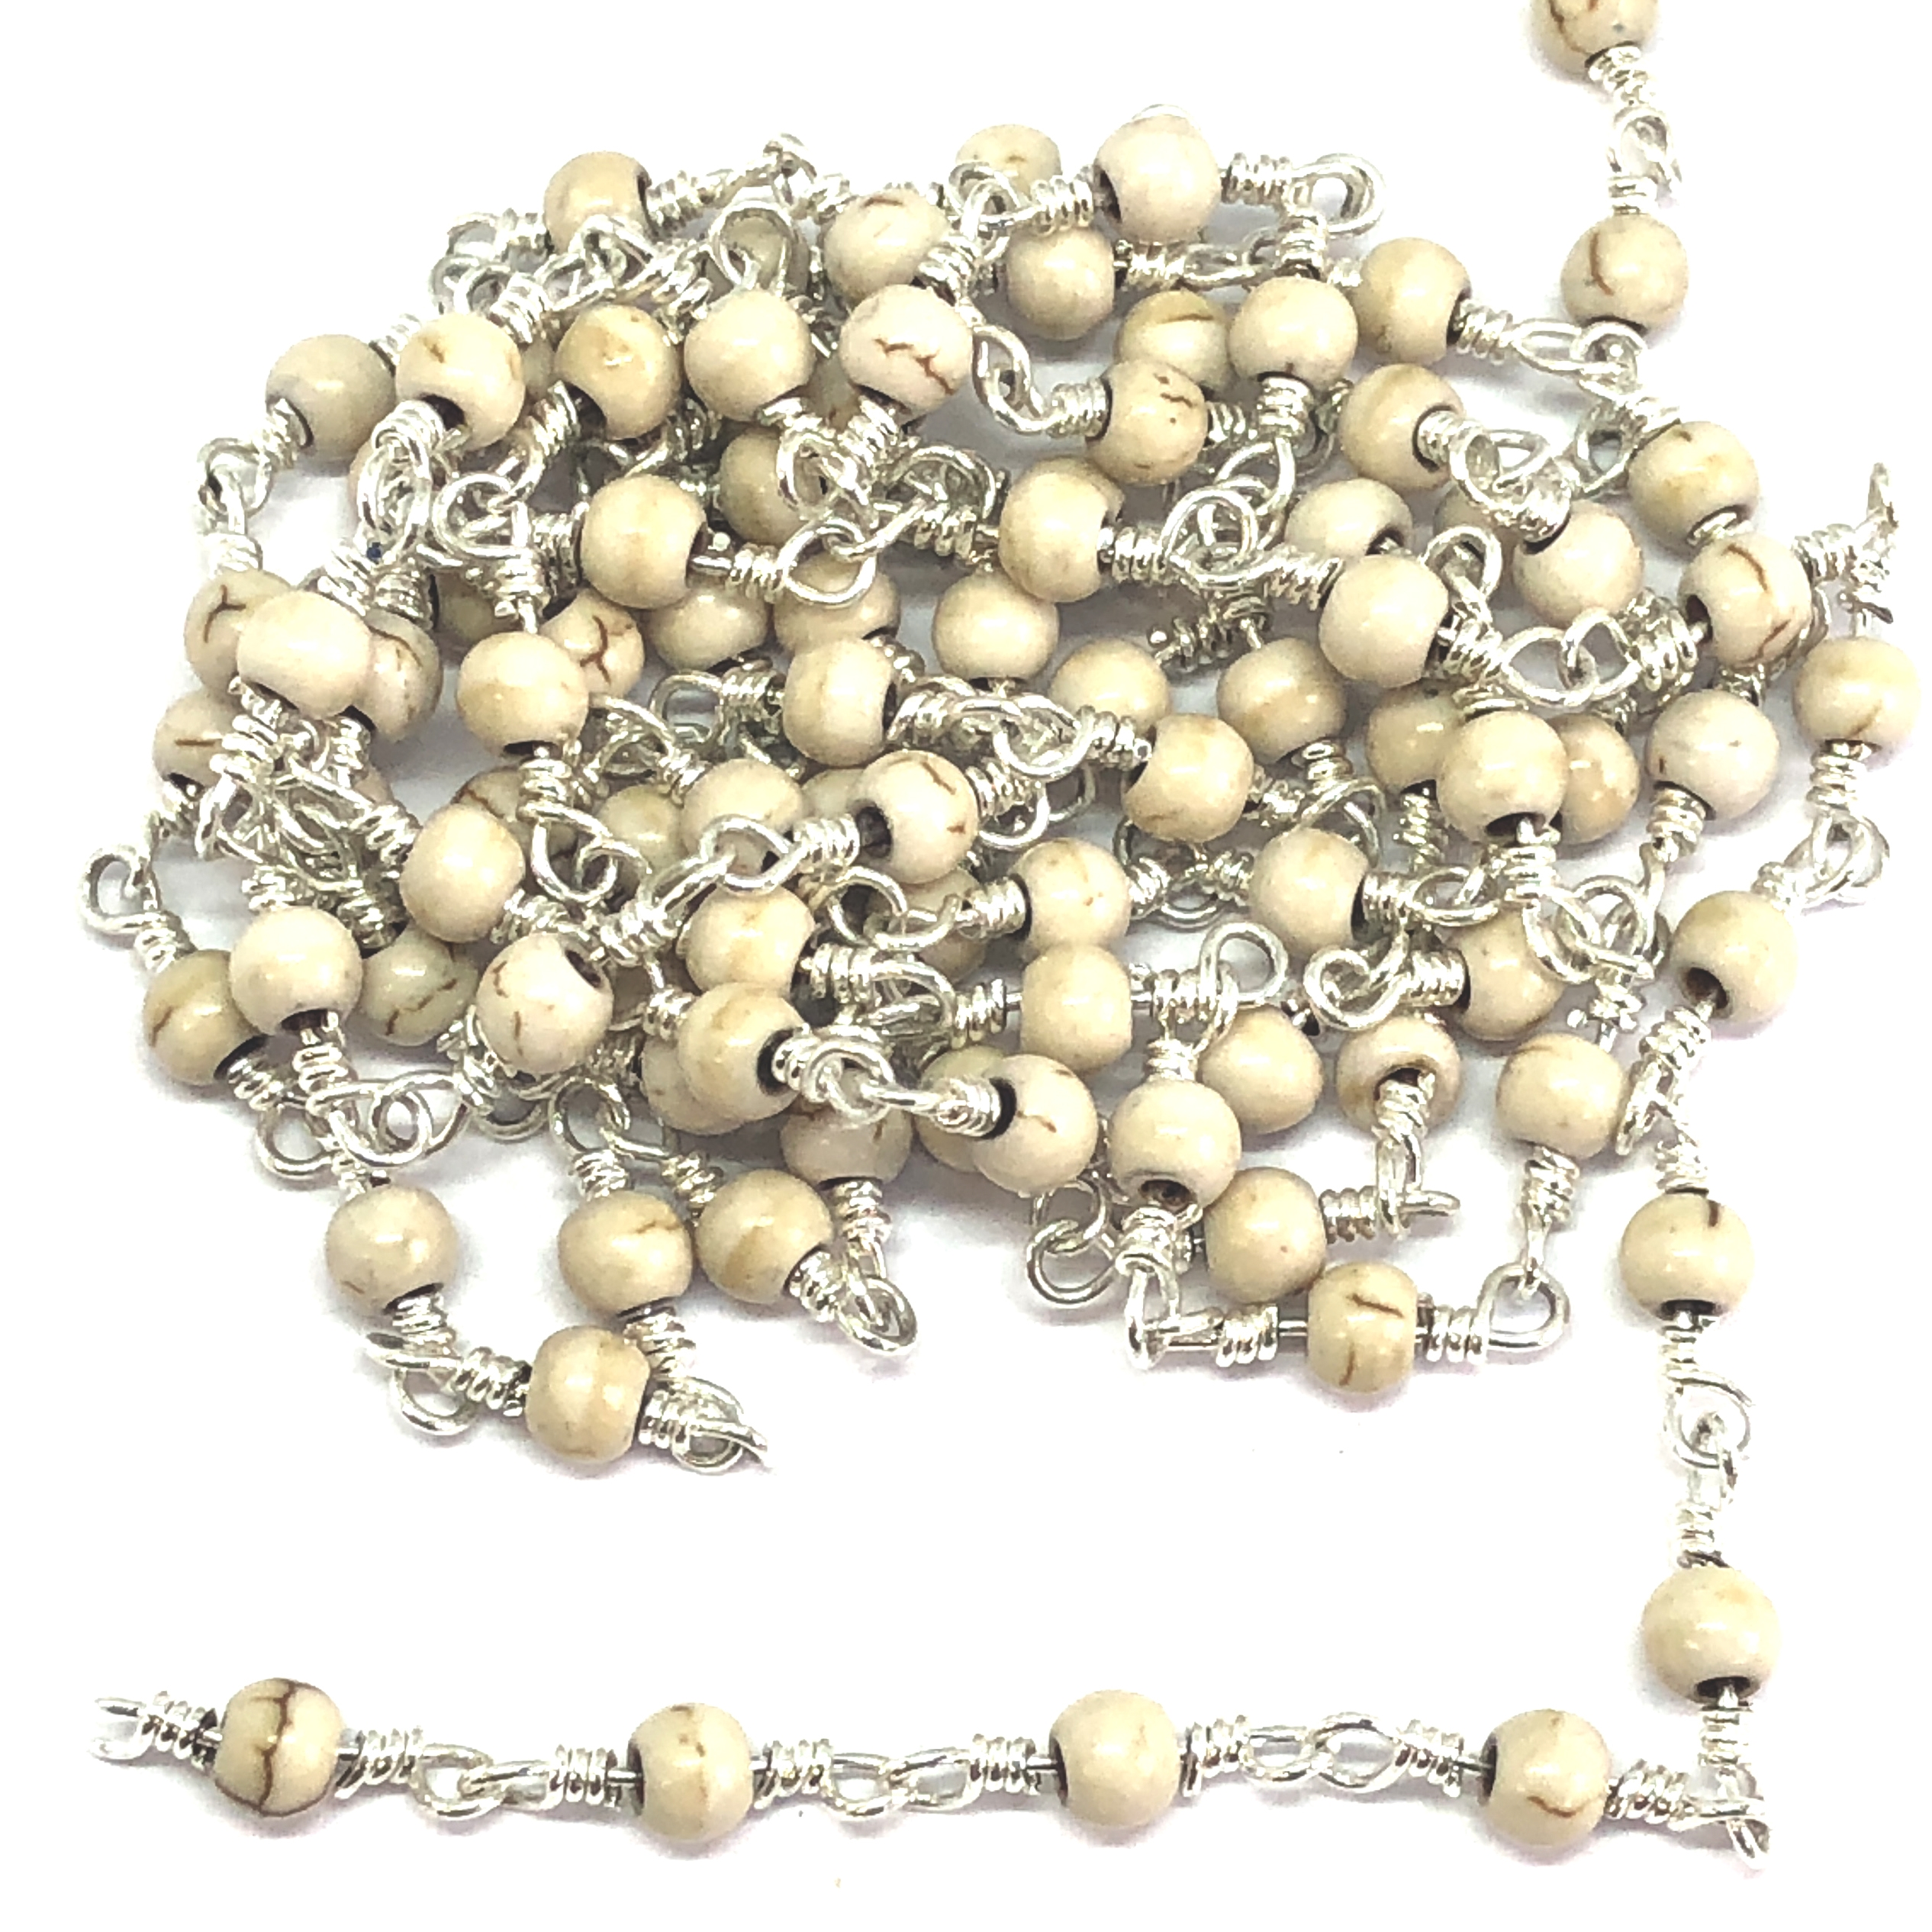 semi precious bead chain, bead chain, hand wire wrapped chain, antique silver chain, howlite beads, jewelry chain, jewelry making supplies, vintage jewelry supplies, bead chain, handmade chain, natural beads, chain, beaded chain, 07852